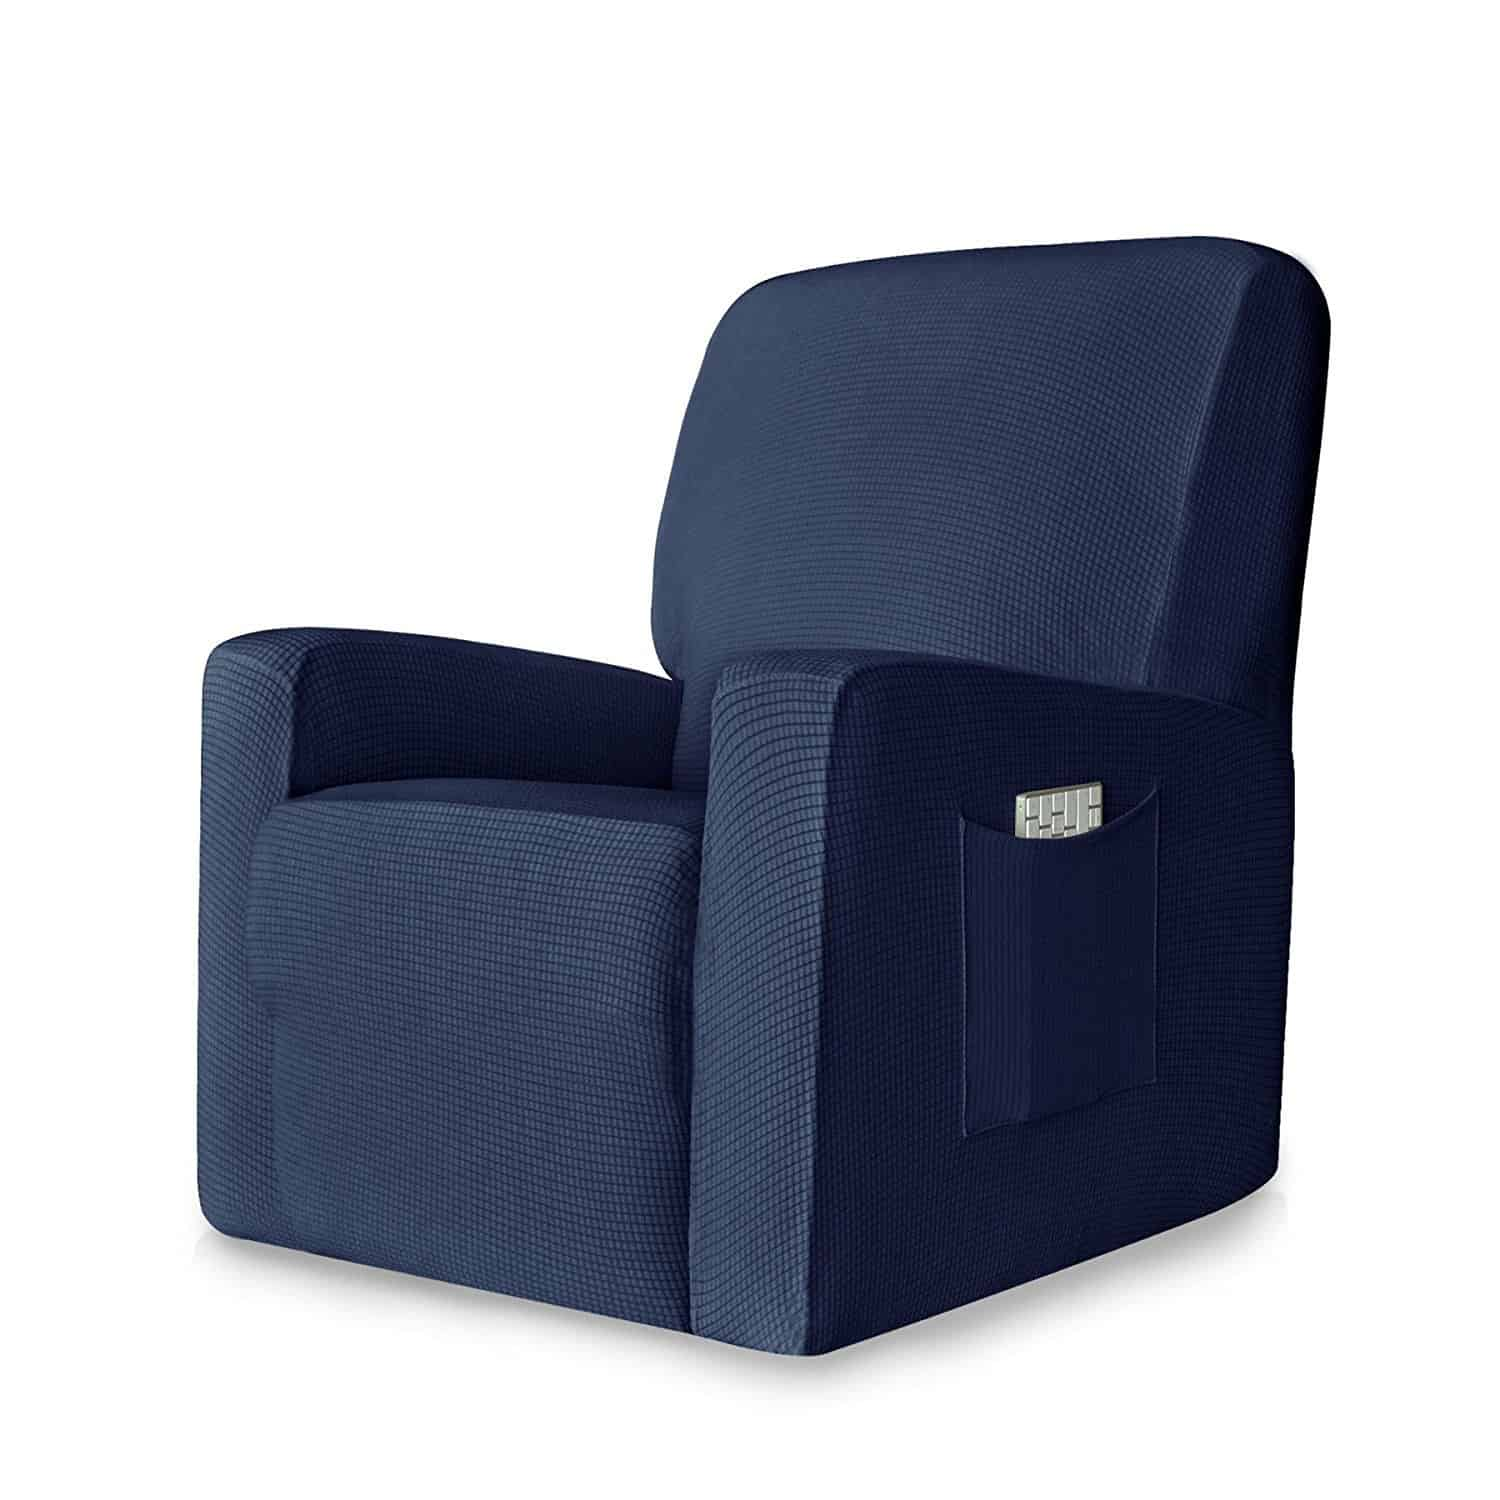 Large blue recliner chair with adjustable function and free sofa covers.